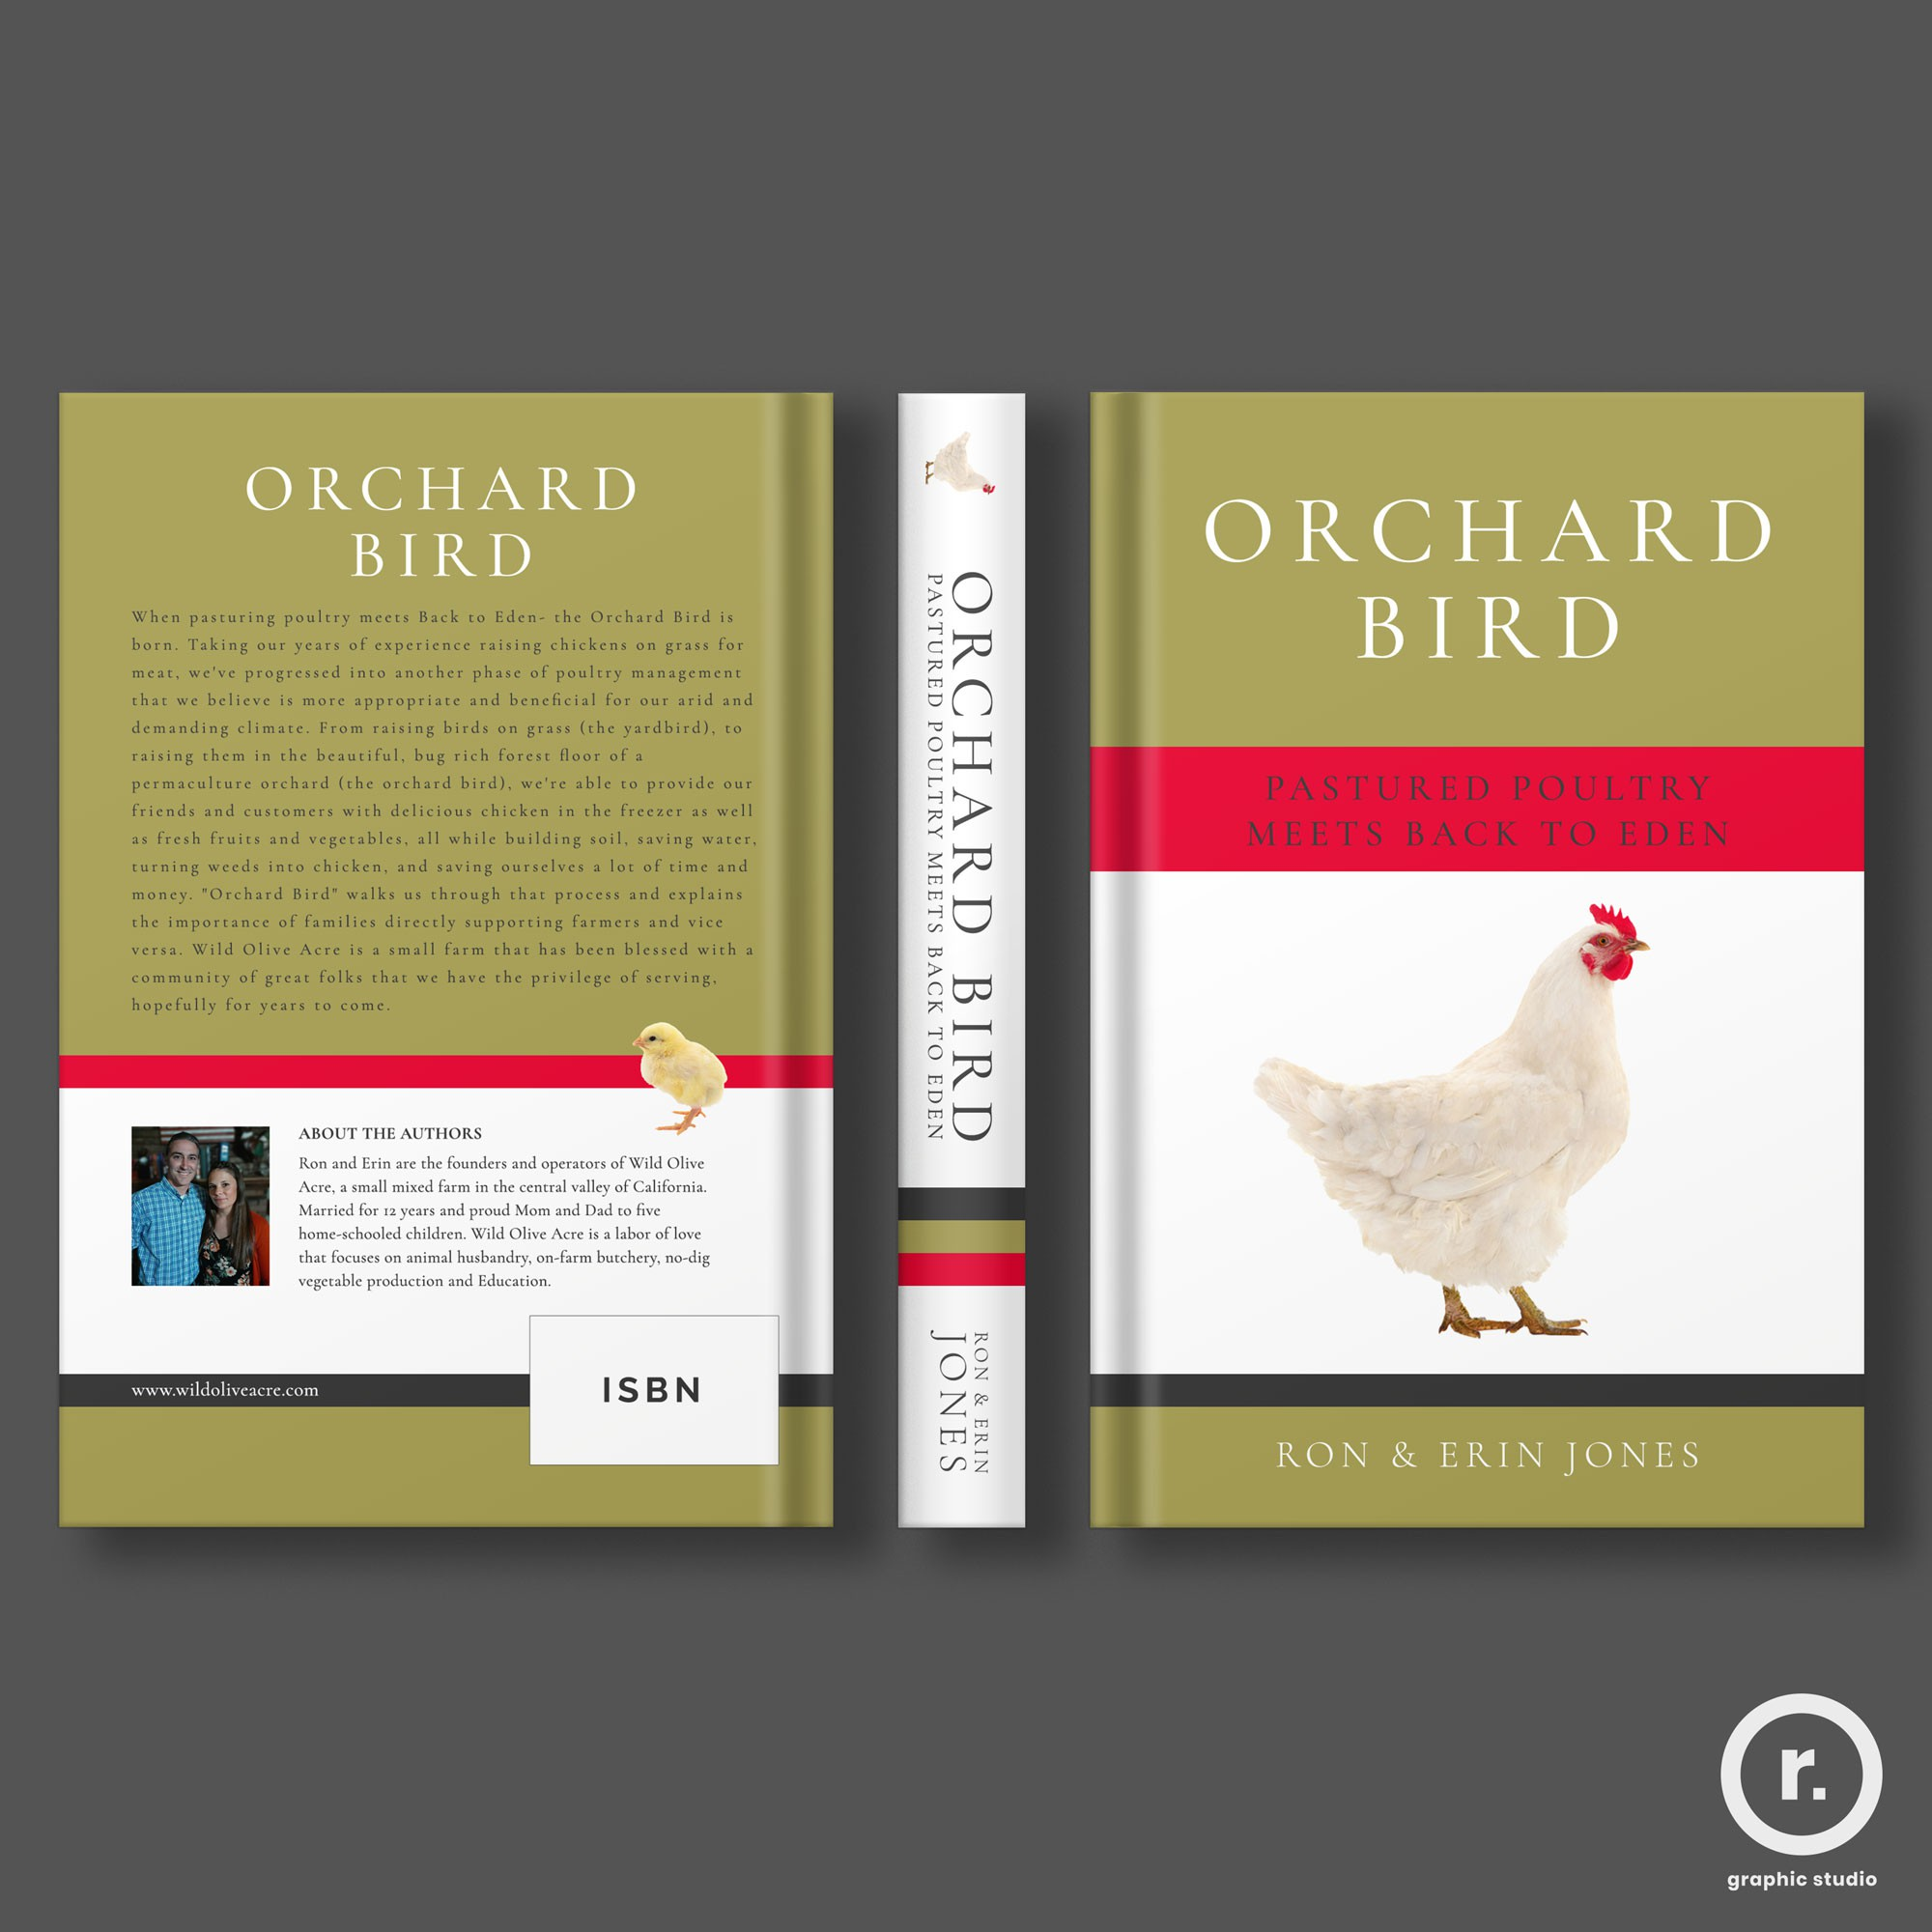 Small permaculture farm needing paperback cover design for use as business promotional.